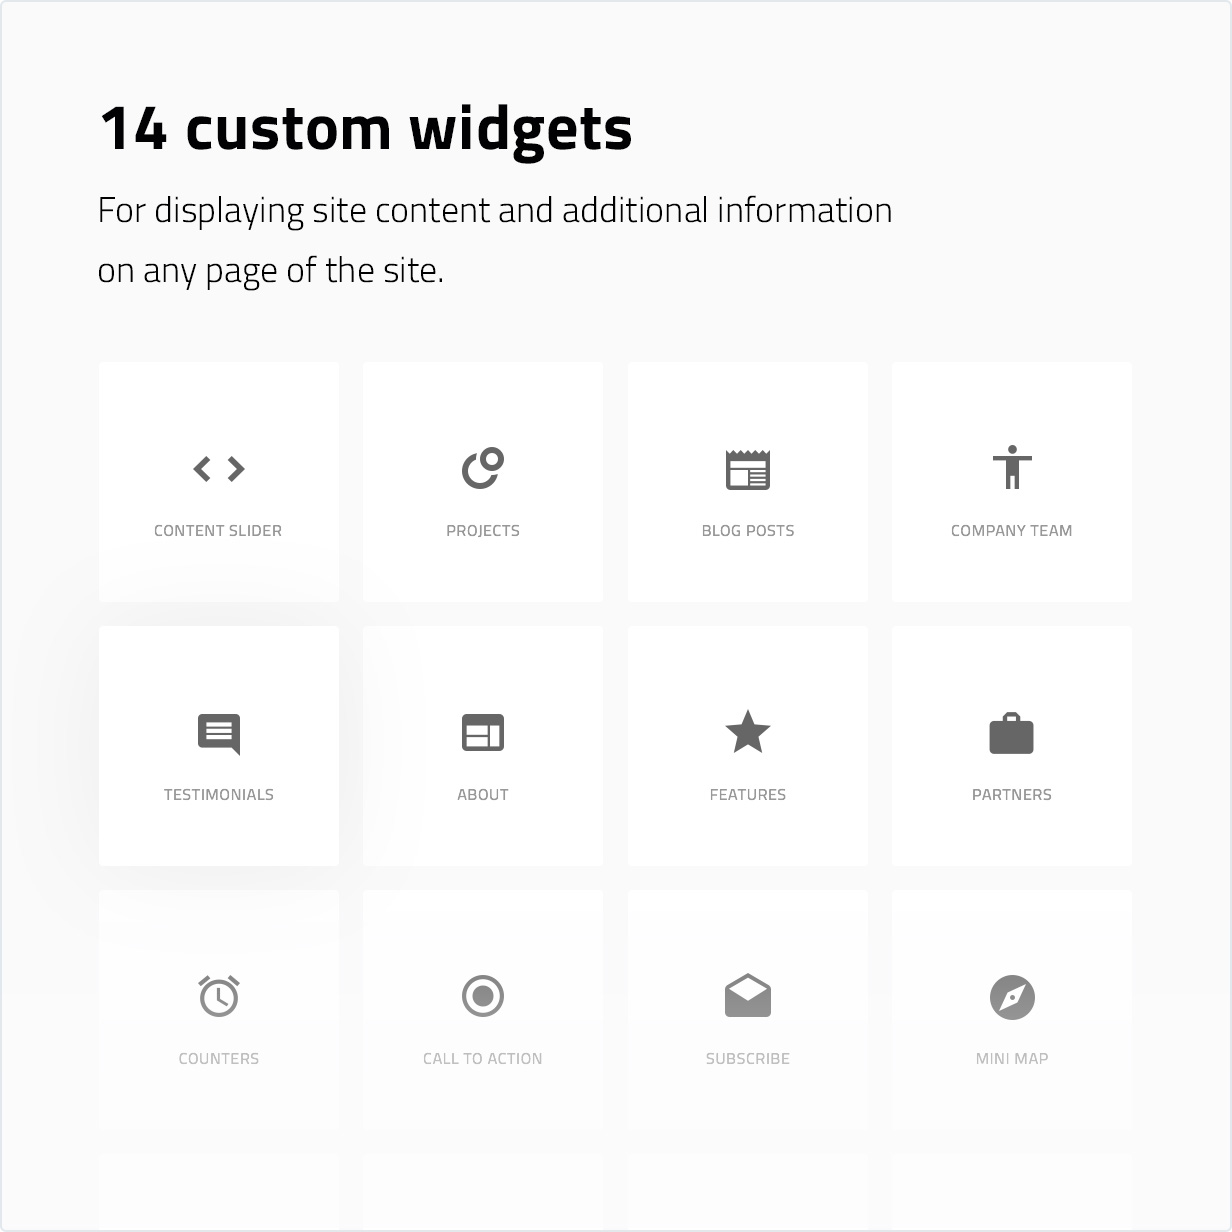 14 custom widgets for displaying site content and additional information on any page of the site